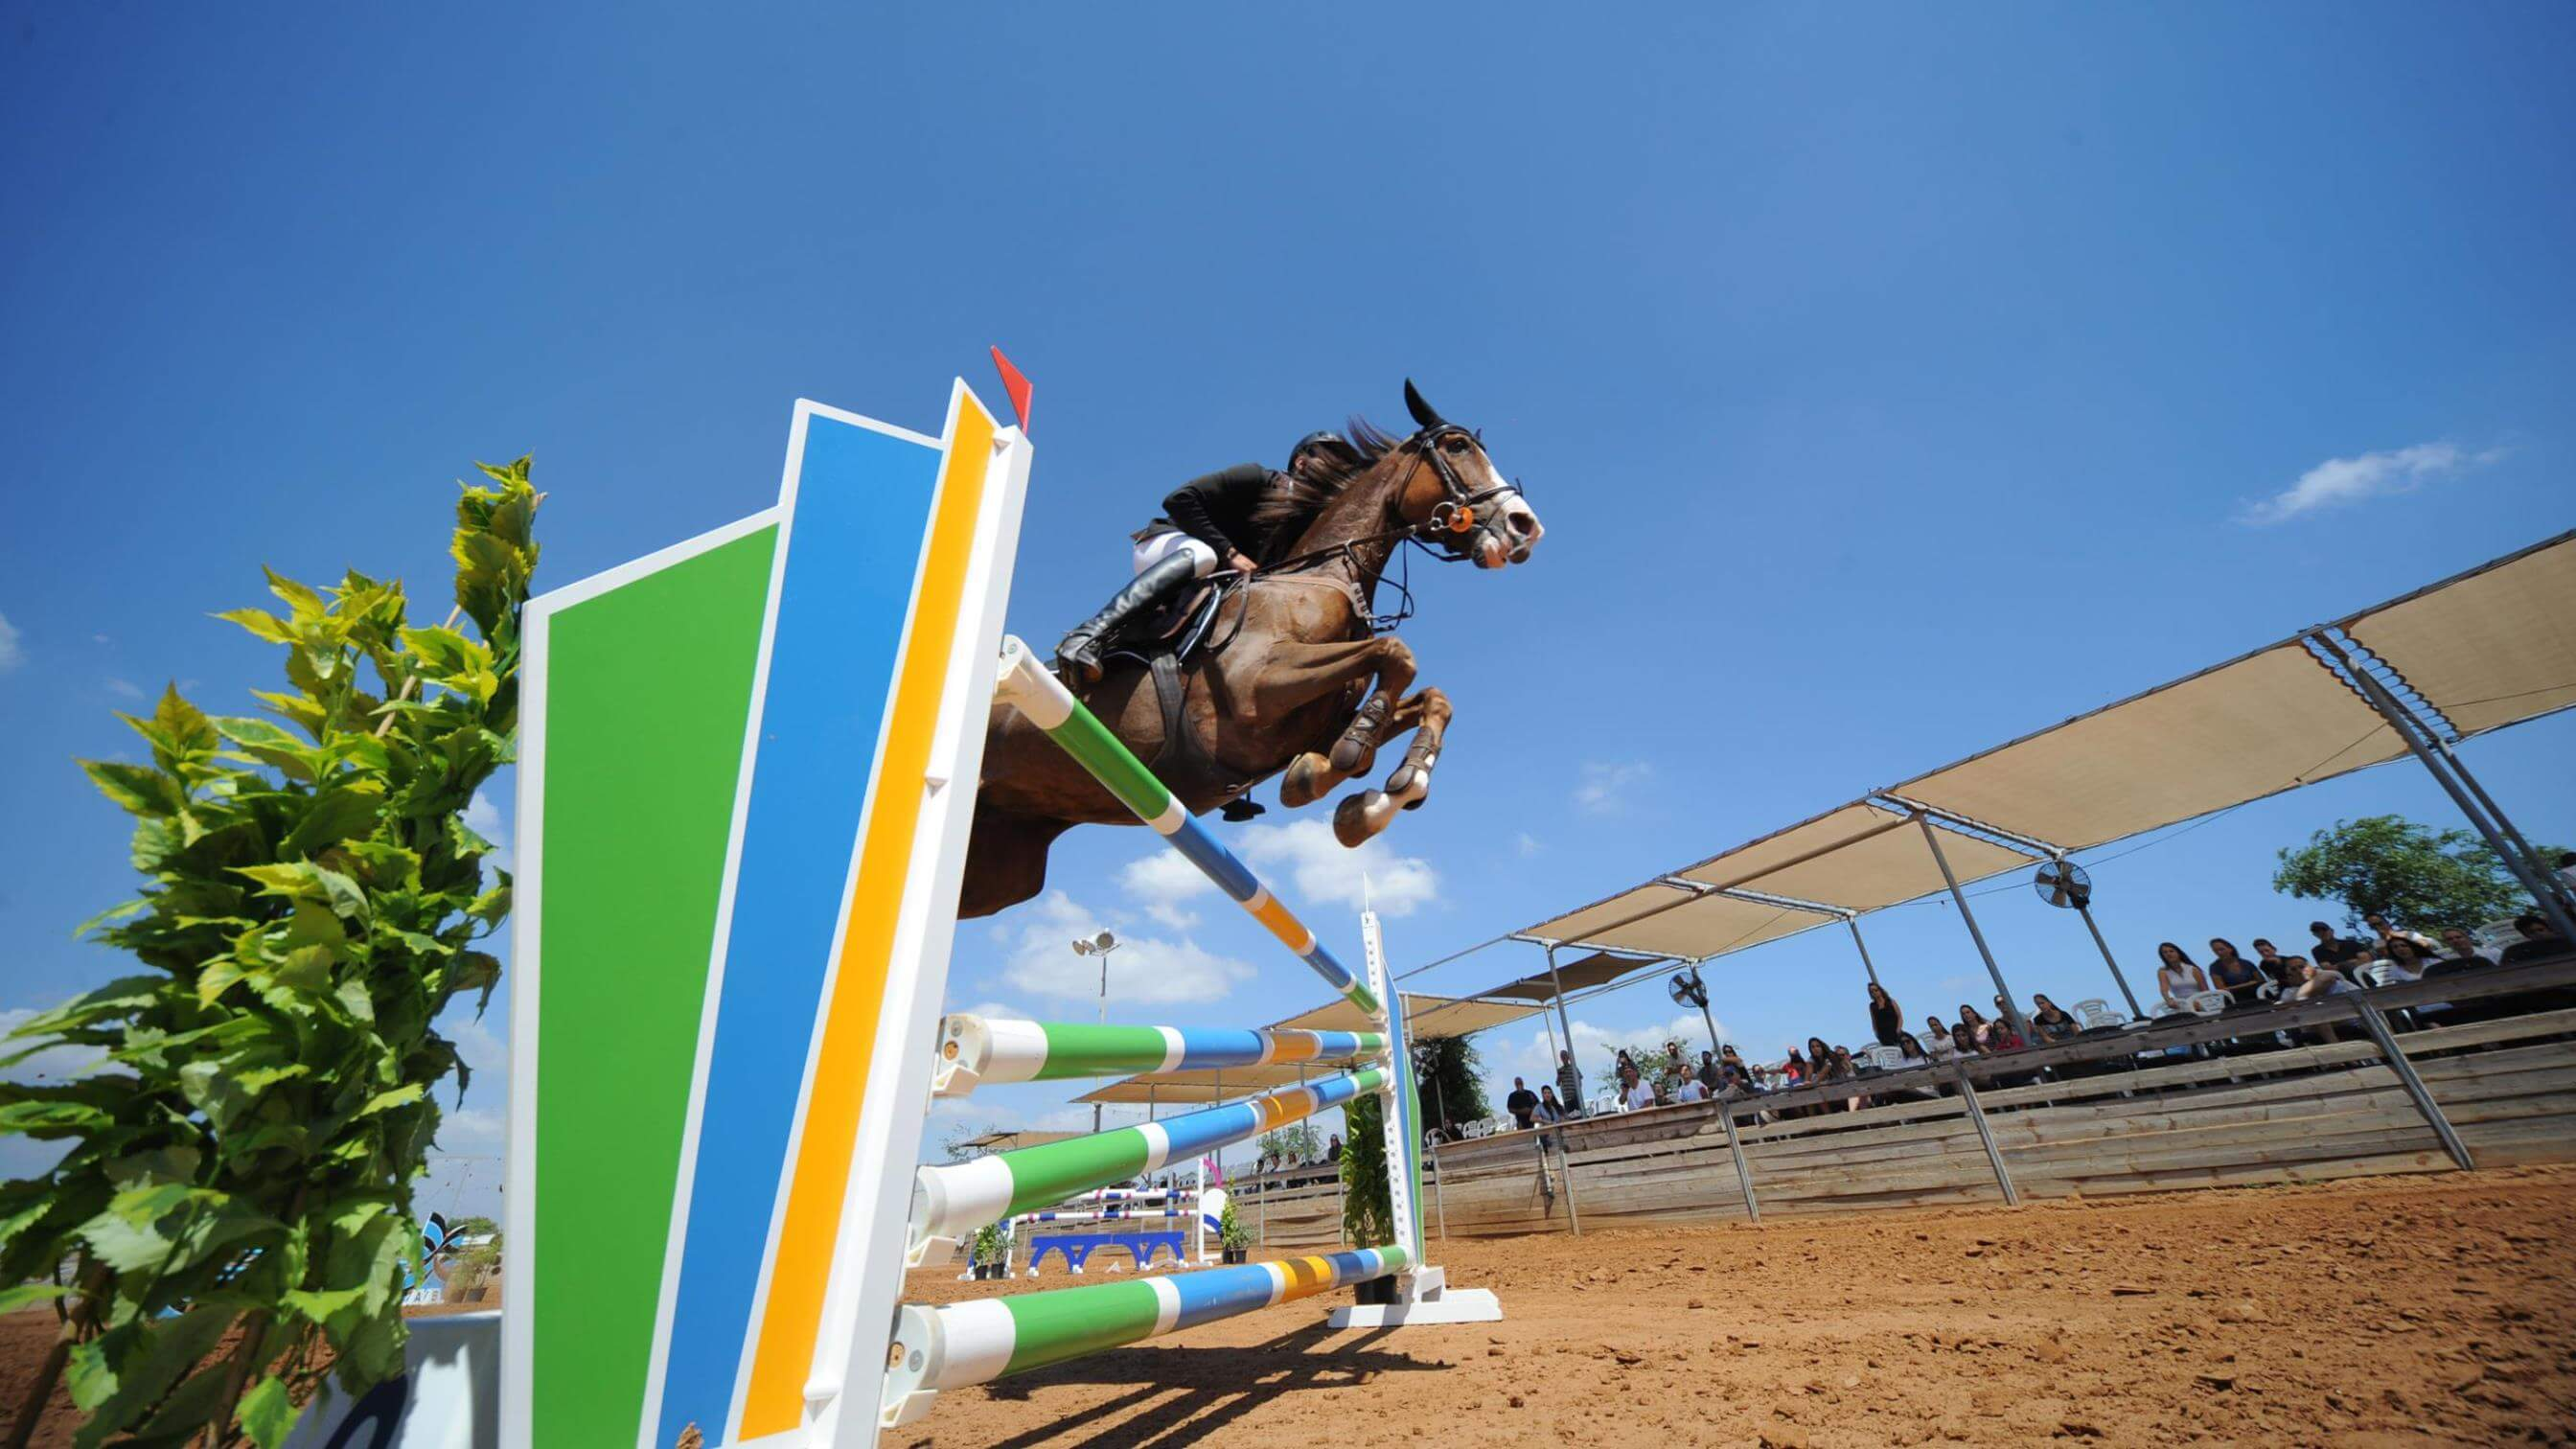 Power for an equestrian event